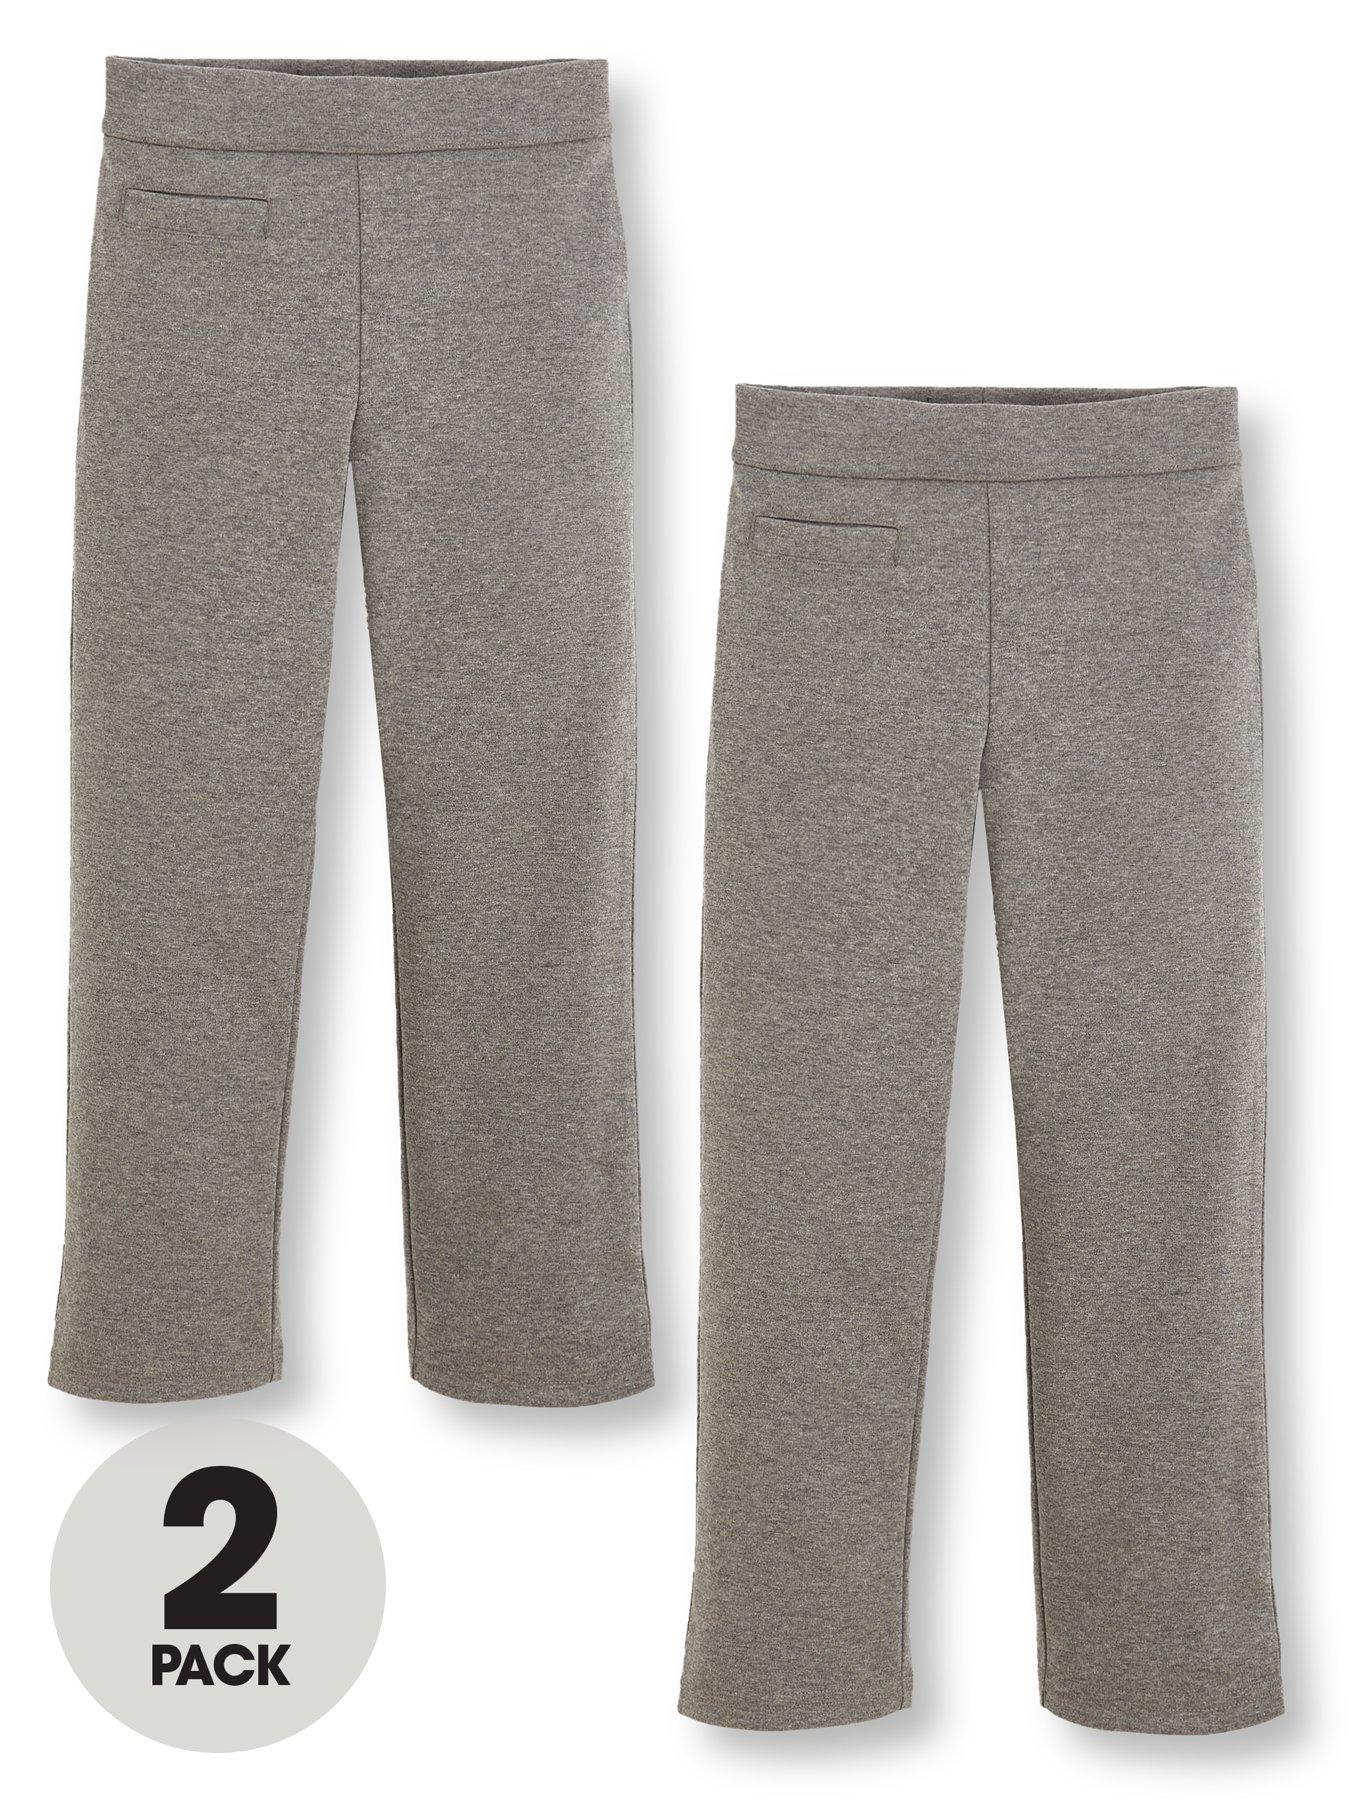 16 waist relaxed X 16 inside leg Direct Uniforms-Classic Quality FULL ELASTICATED WAIST boys school Pull-up Trousers 2-7YRS 4-5YRS